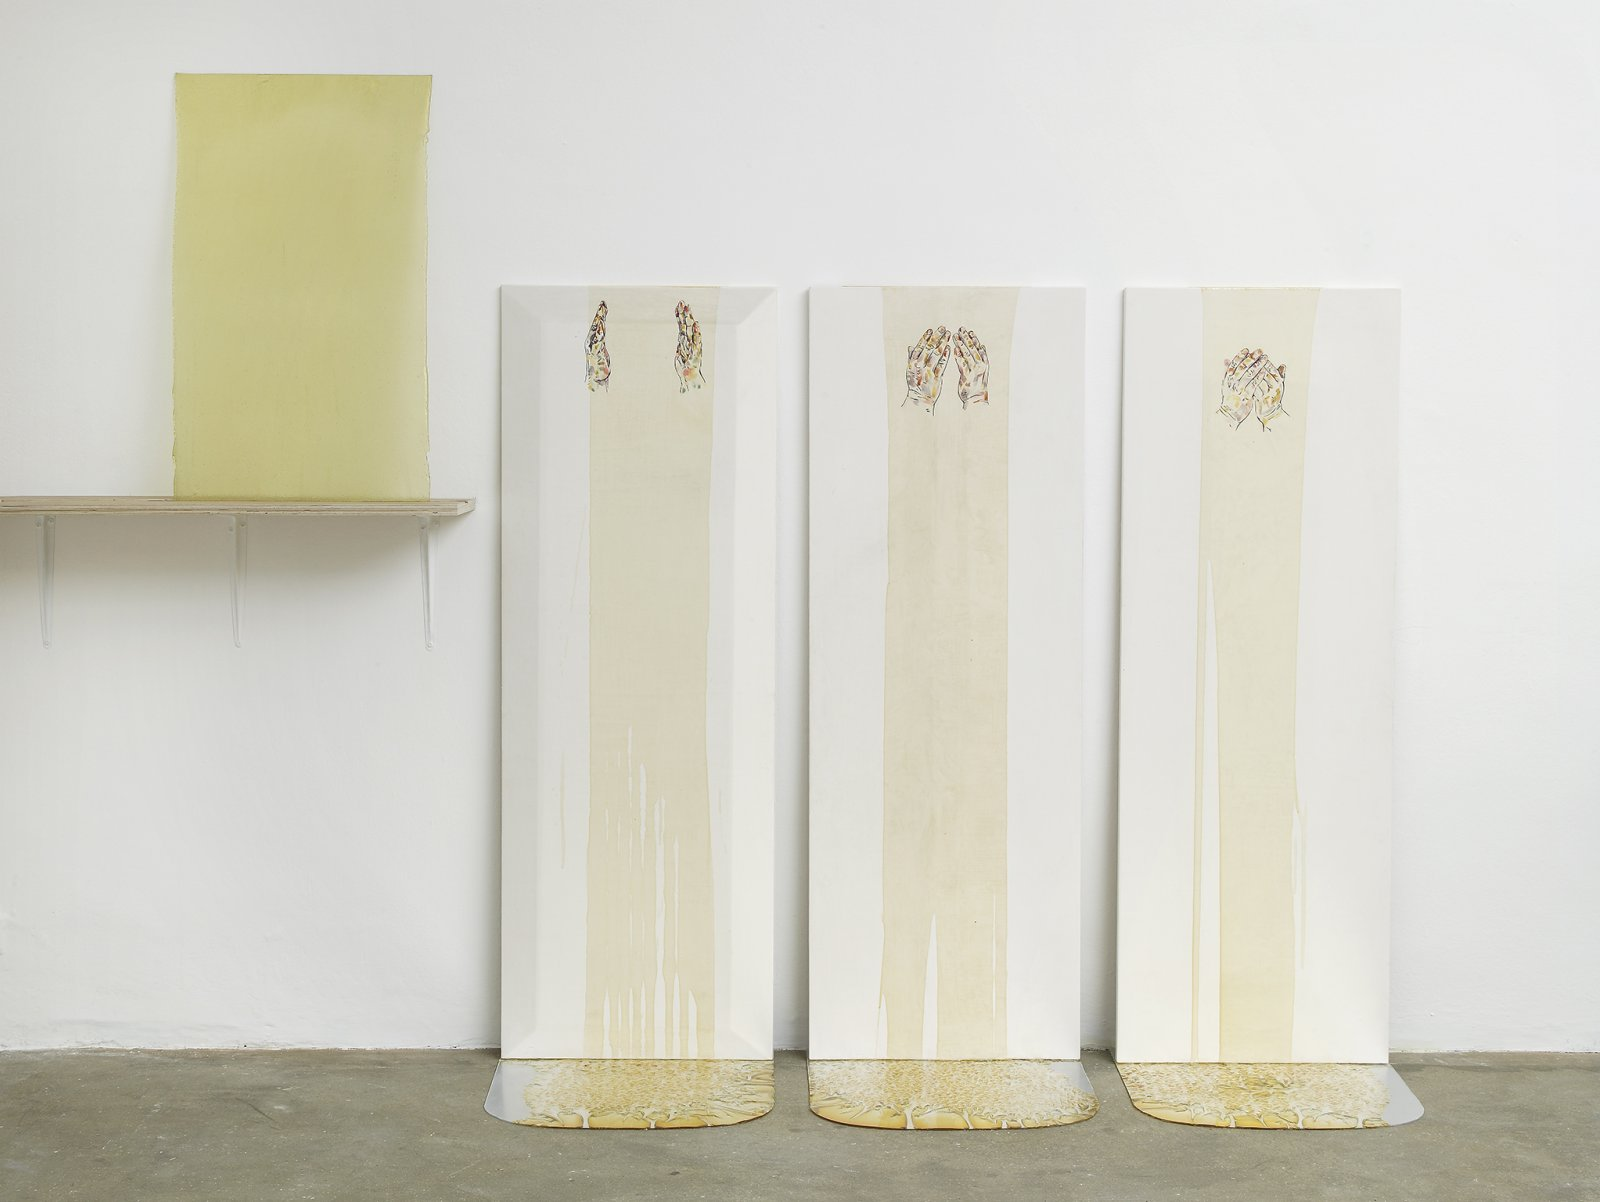 Christina Mackie, Dissembling, 2012, watercolour, gesso, perspex, varnish, dimensions variable. Installation view, Painting the Weights, Chisehale Gallery, London, UK, 2012 by Christina Mackie